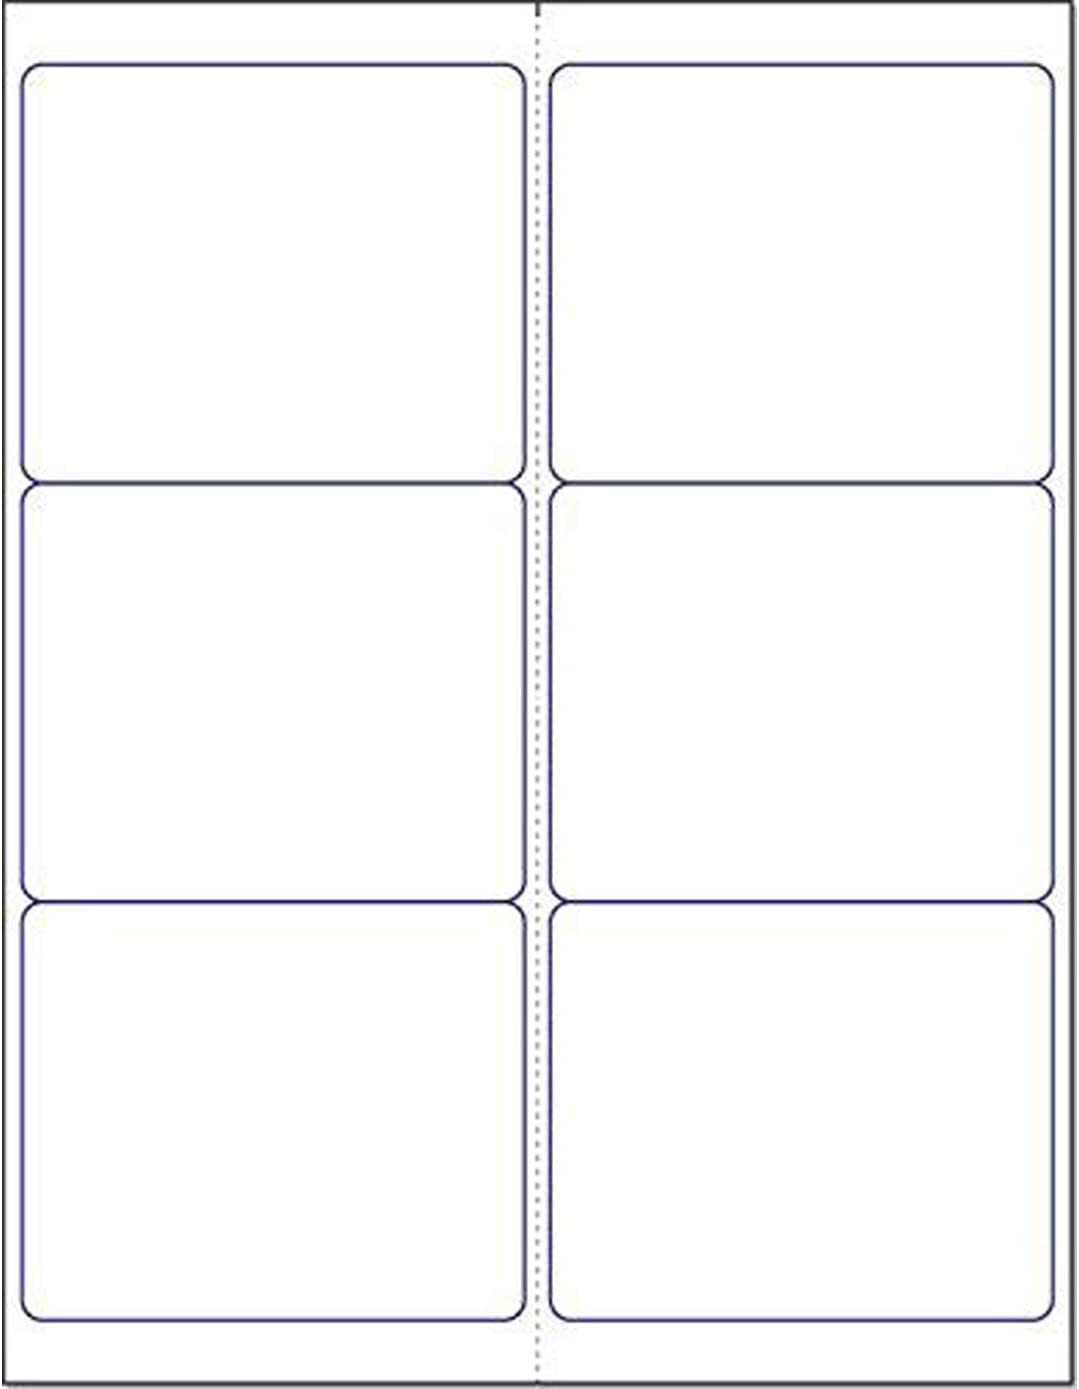 """Blank White Permanent Adhesive Labels for Laser/Ink Jet Printer (4"""" x 3-1/3"""" - 6 Per Page 